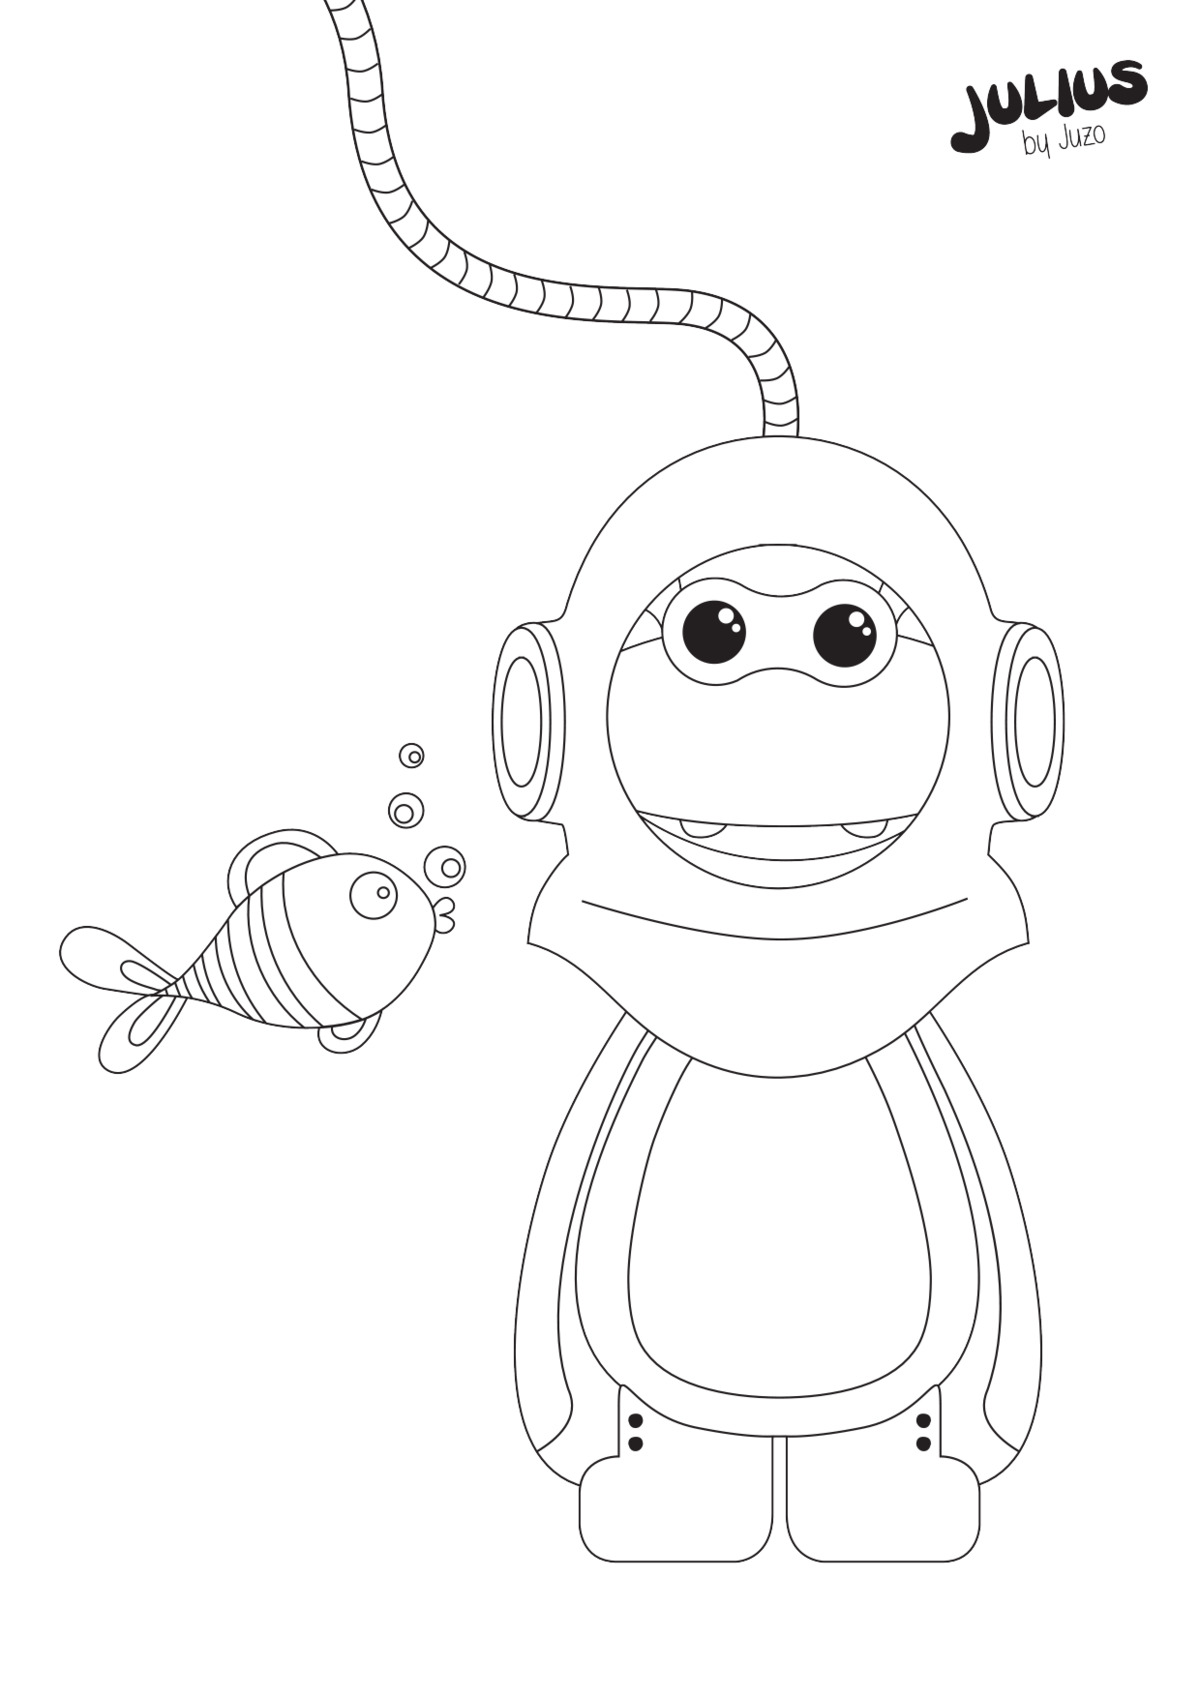 Diving suit - colouring pages